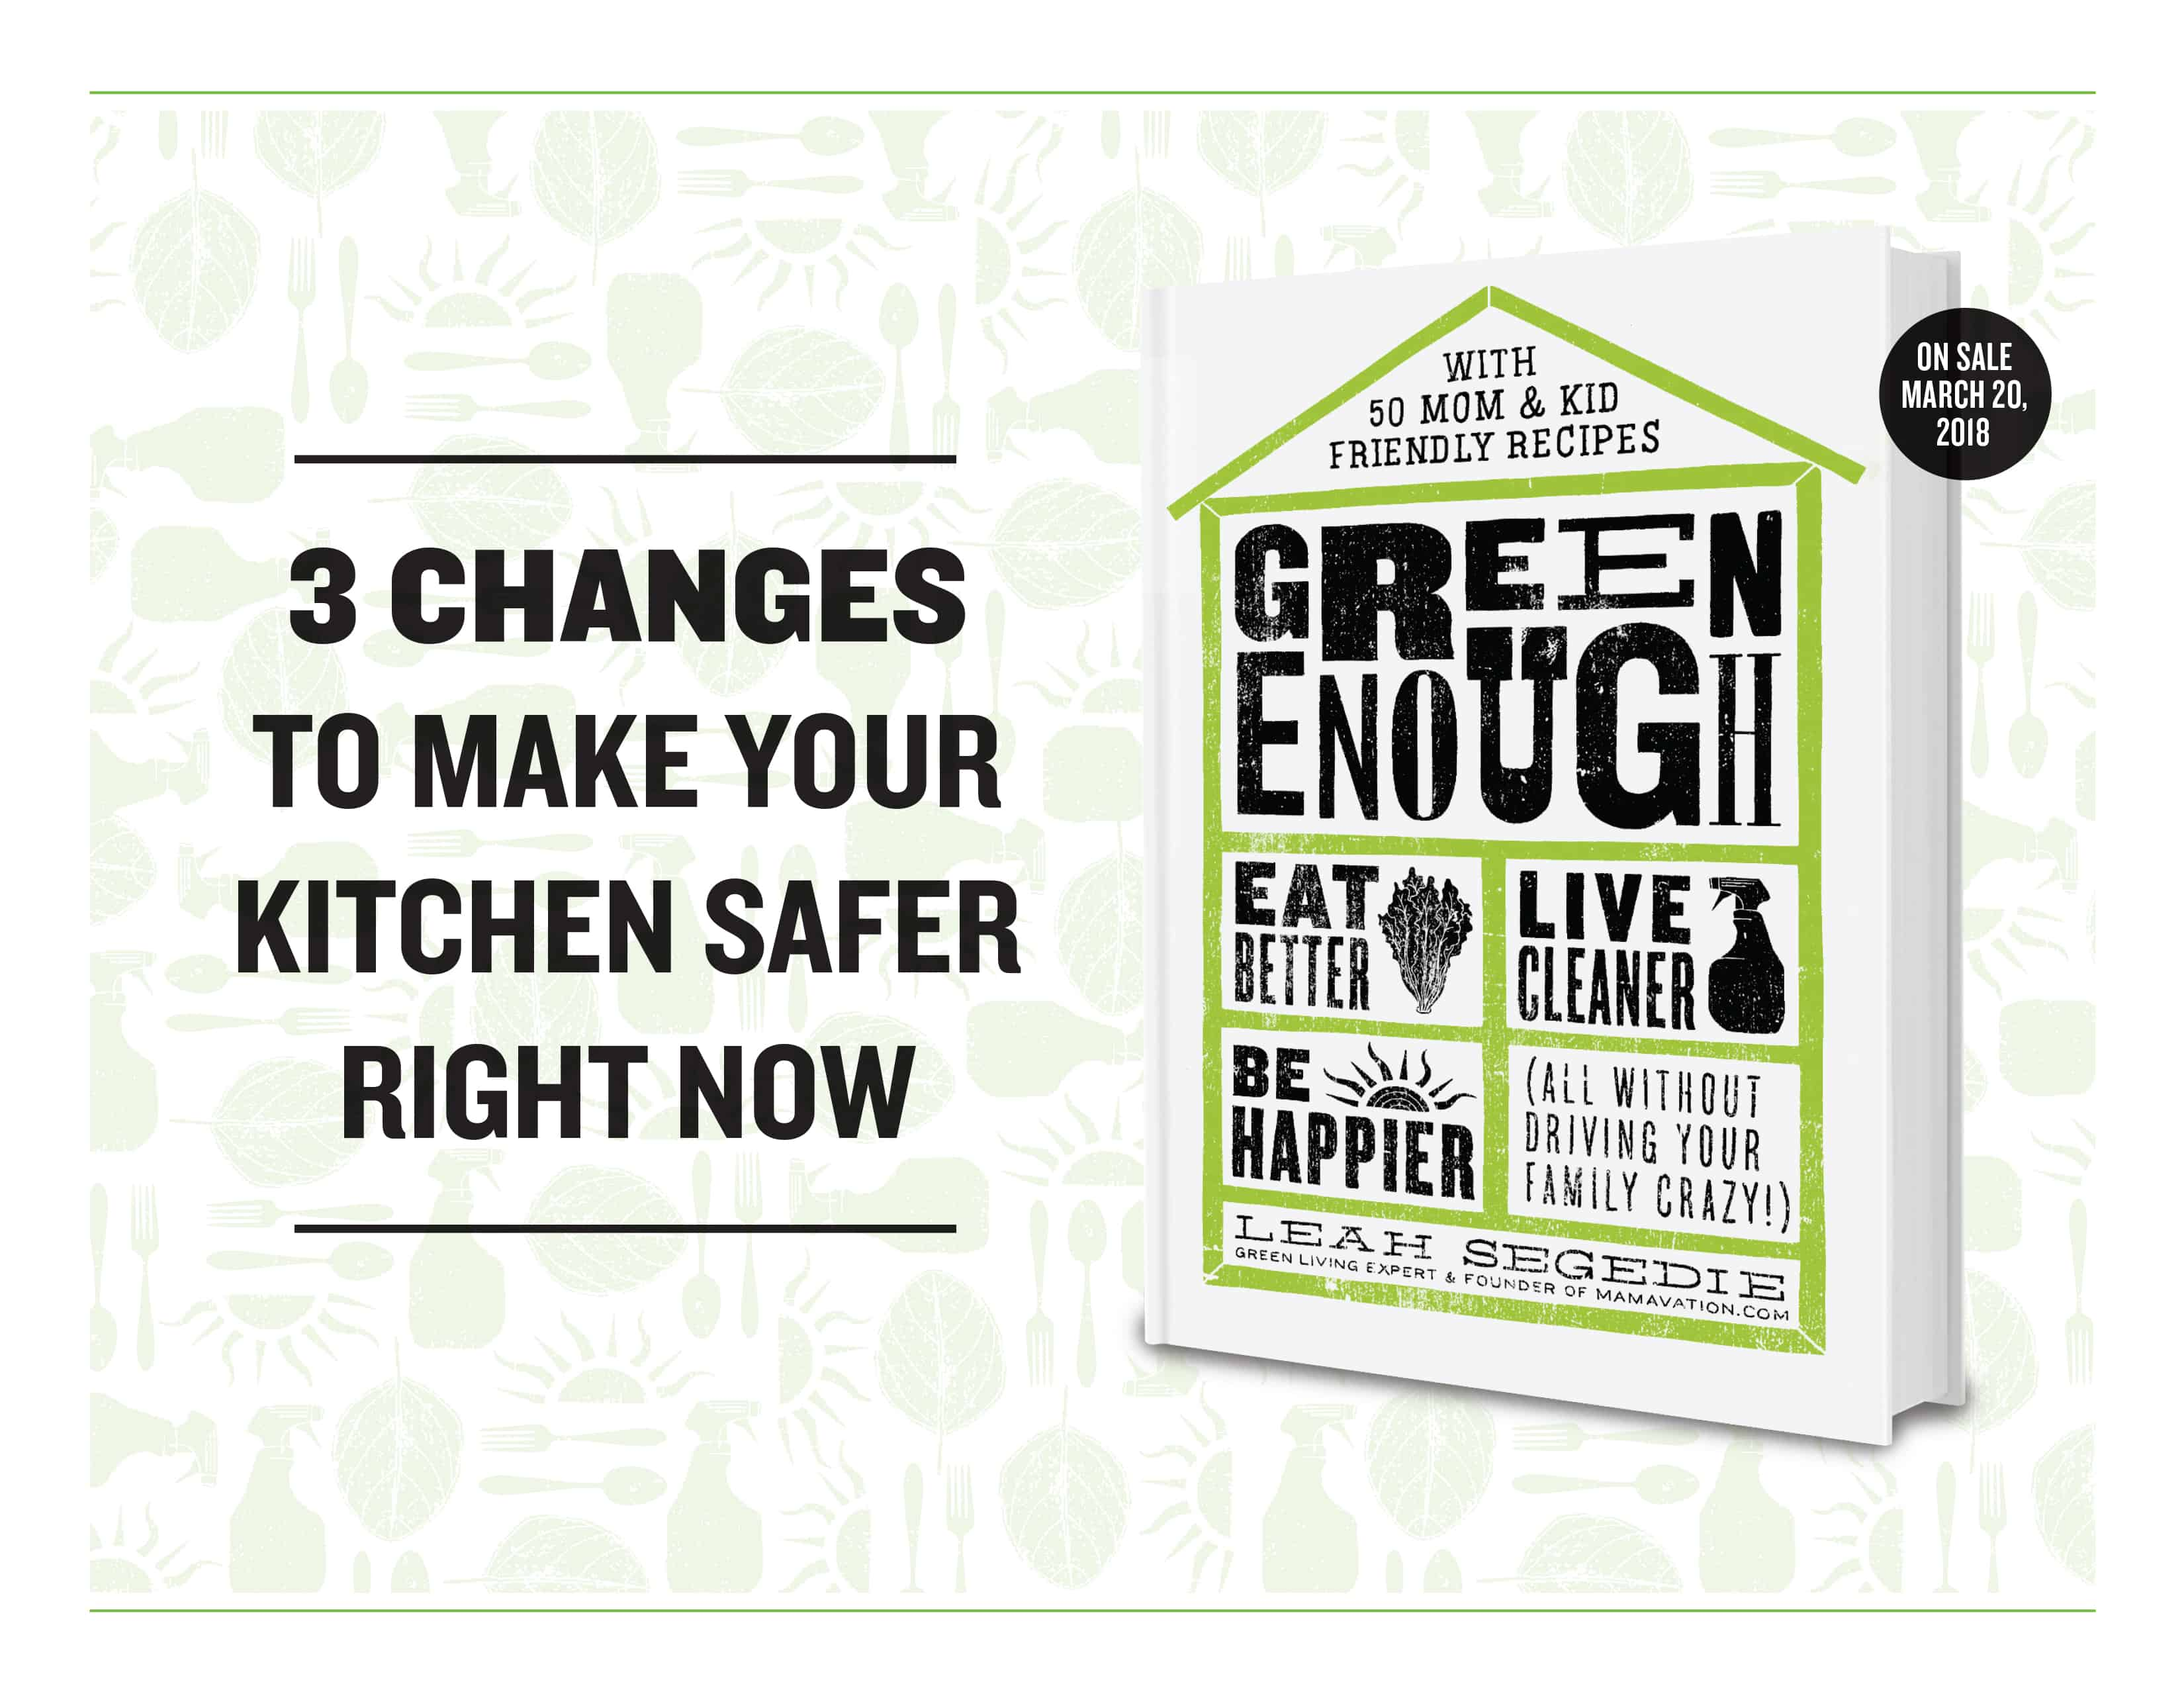 Green Enough eBook 3 Changes to Make Your Kitchen Safer Right Now